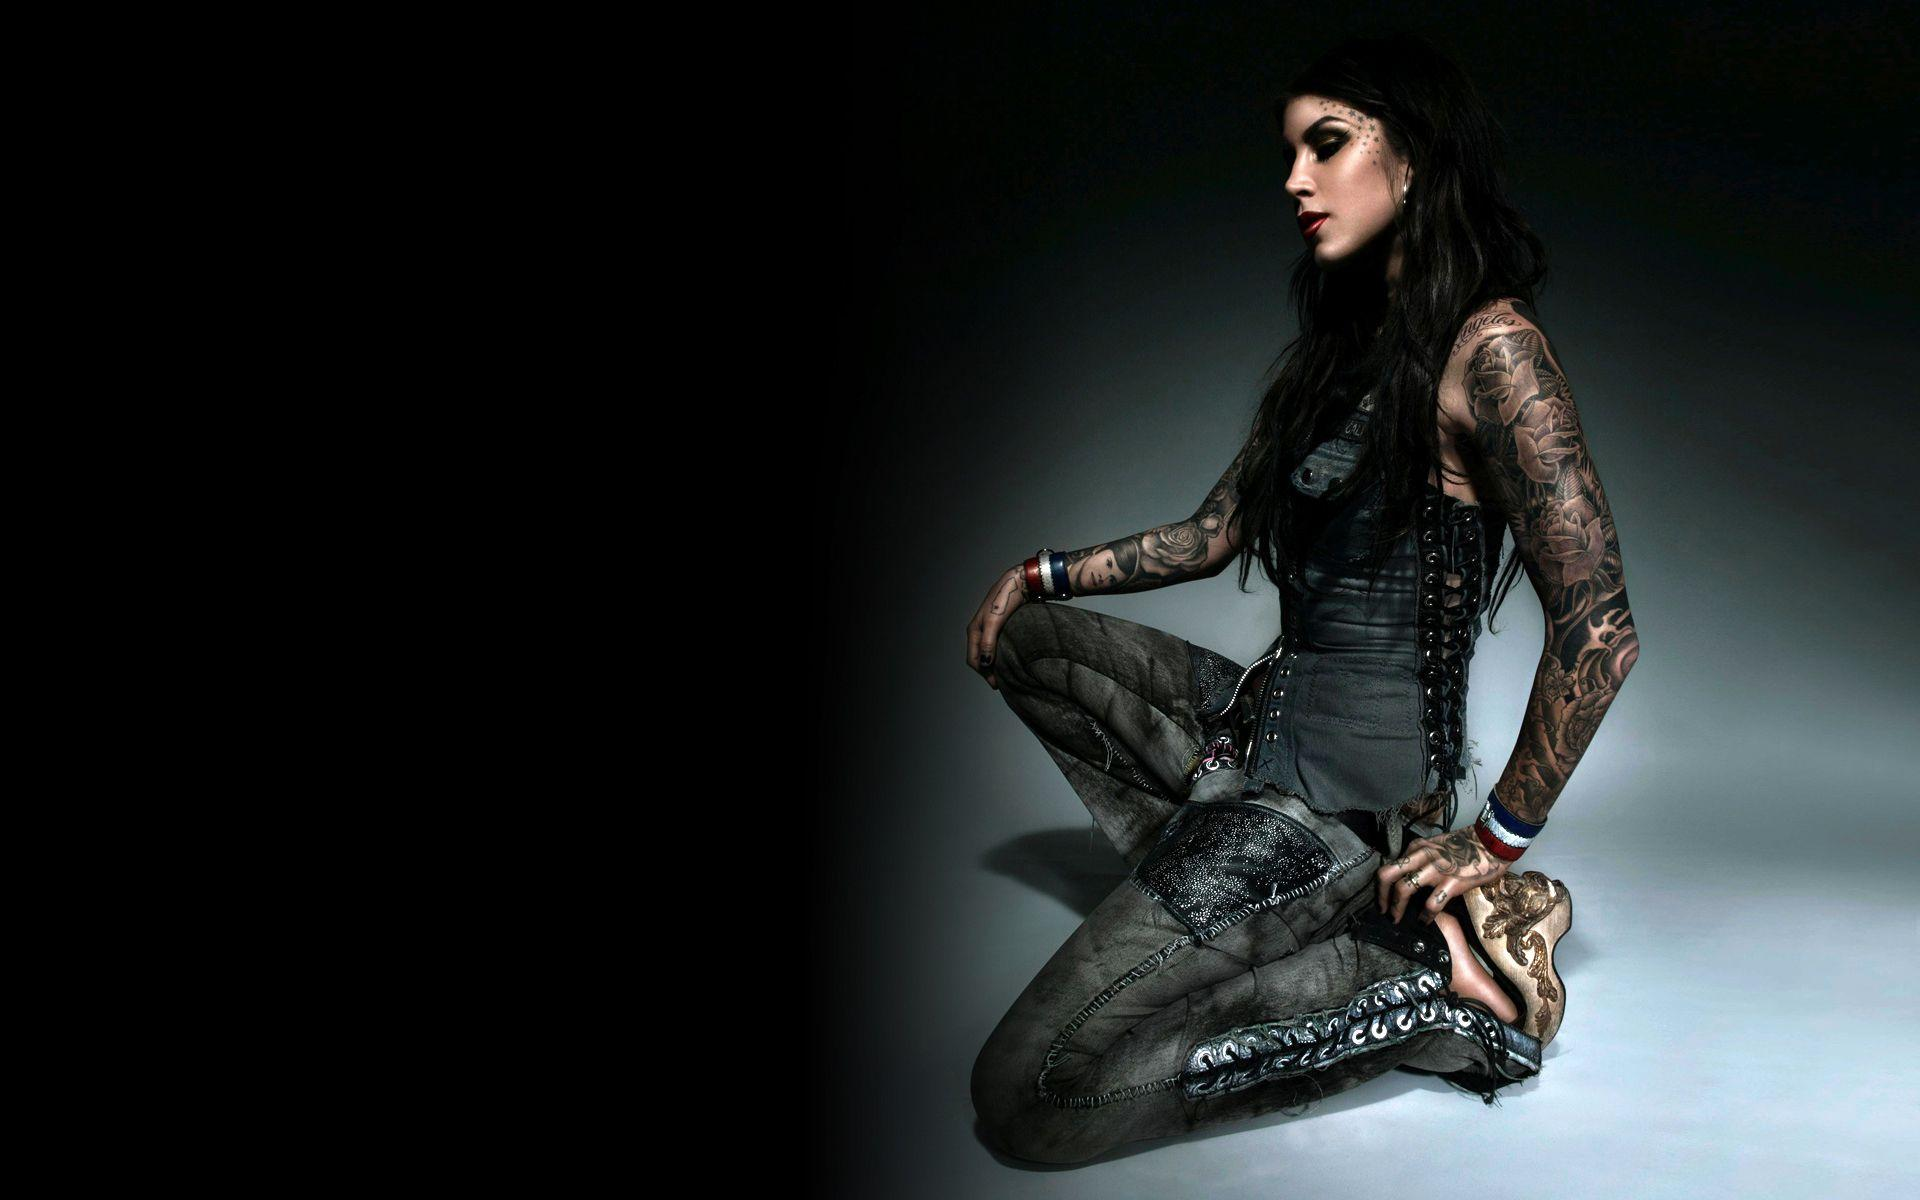 Kat Von D Full HD Wallpaper and Background Image | 1920x1200 | ID:157923